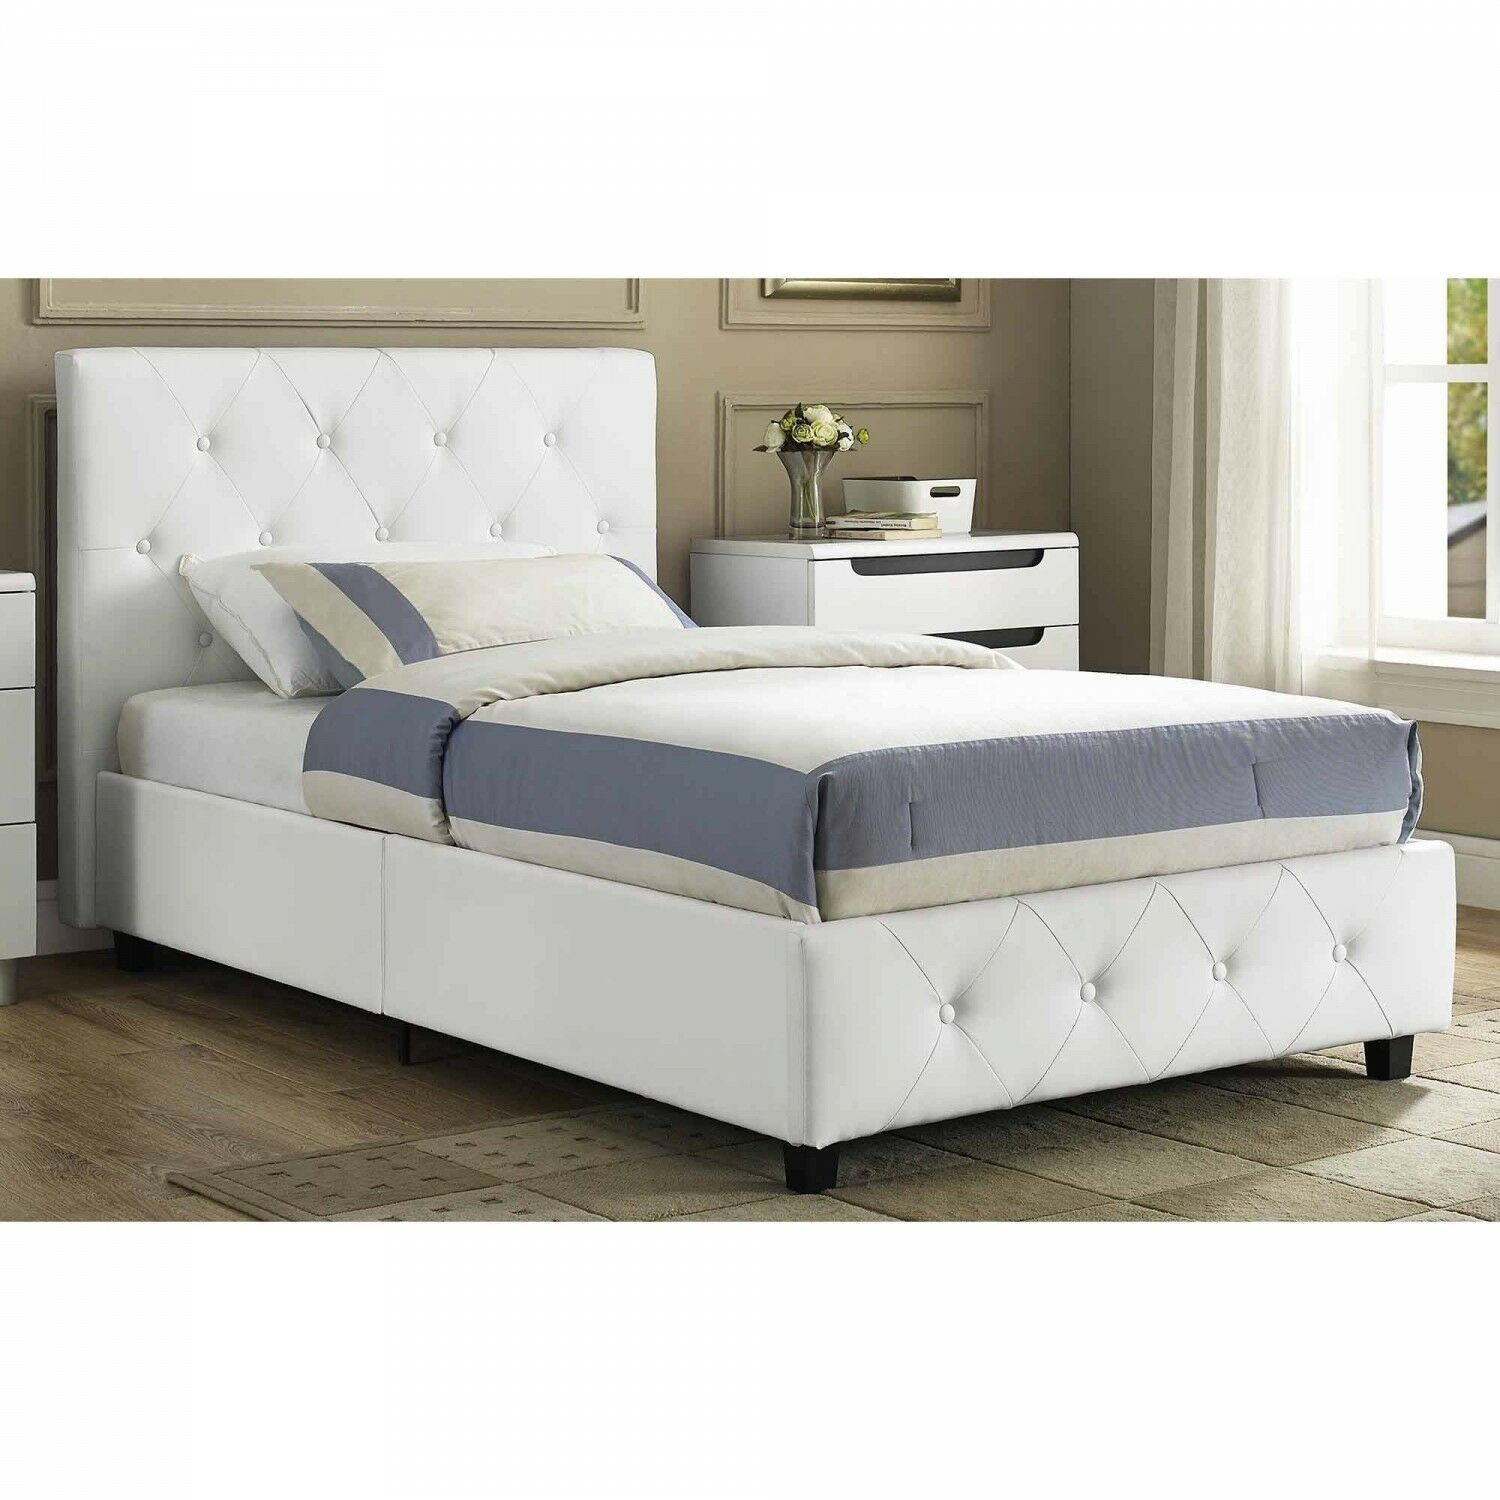 Headboard Upholstered Bed Faux Leather White Tufted Twin Ful